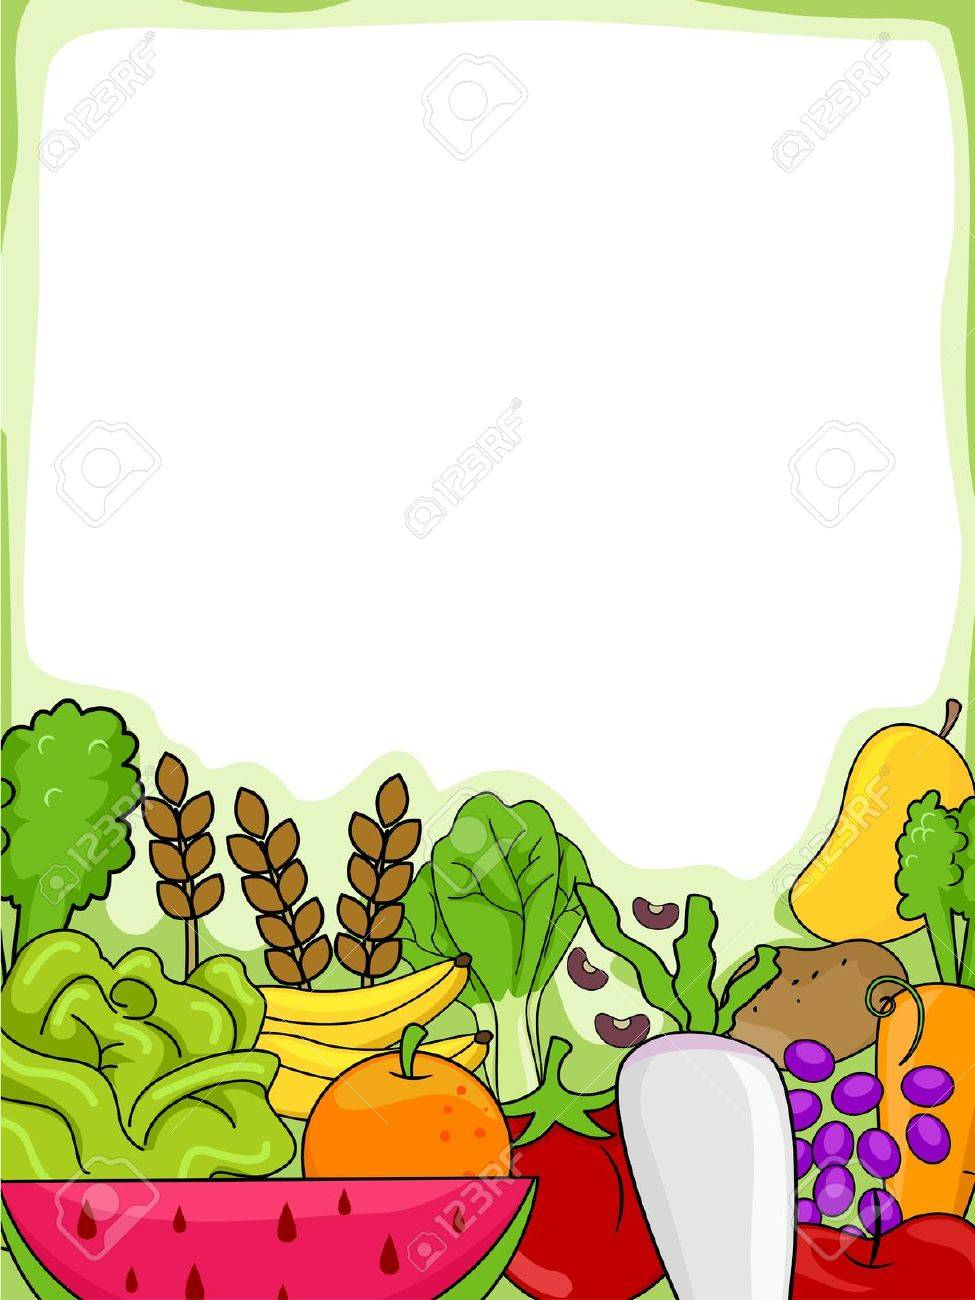 background illustration of fruits and vegetables stock photo